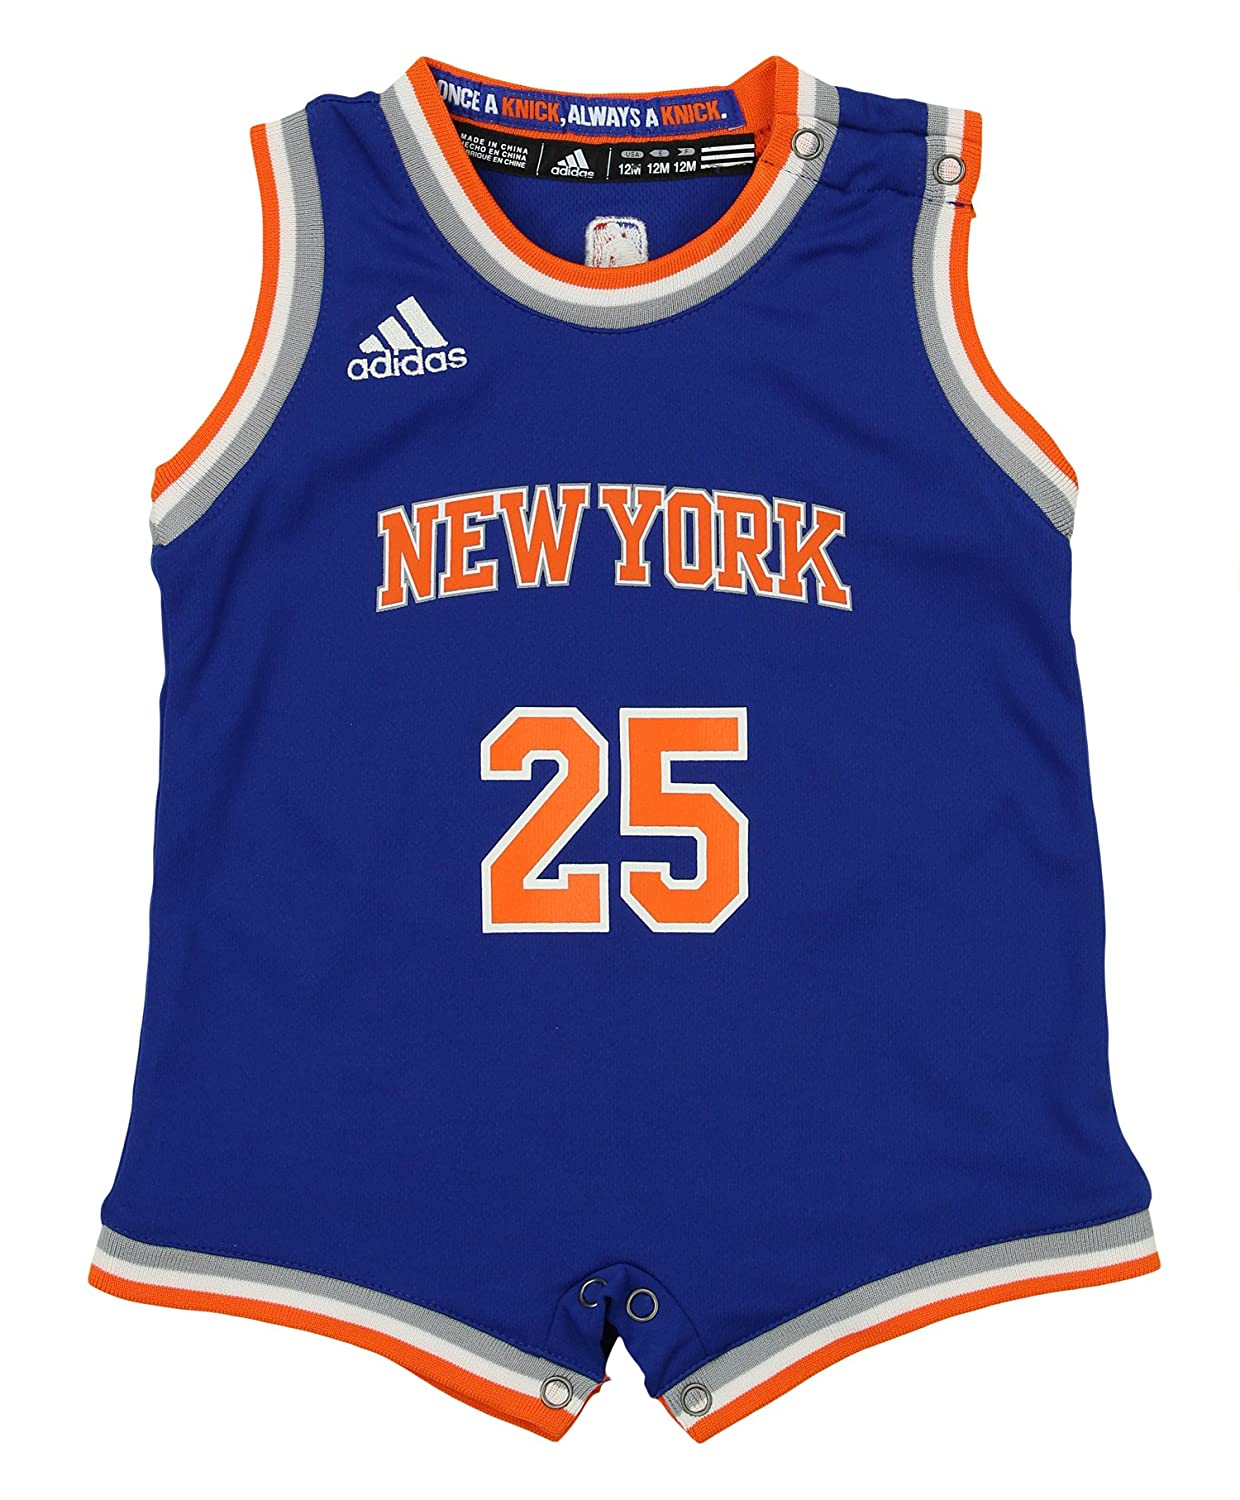 3a6ddf63d Amazon.com  adidas NBA Infant s New York Knicks Derrick Rose Replica  Onesie